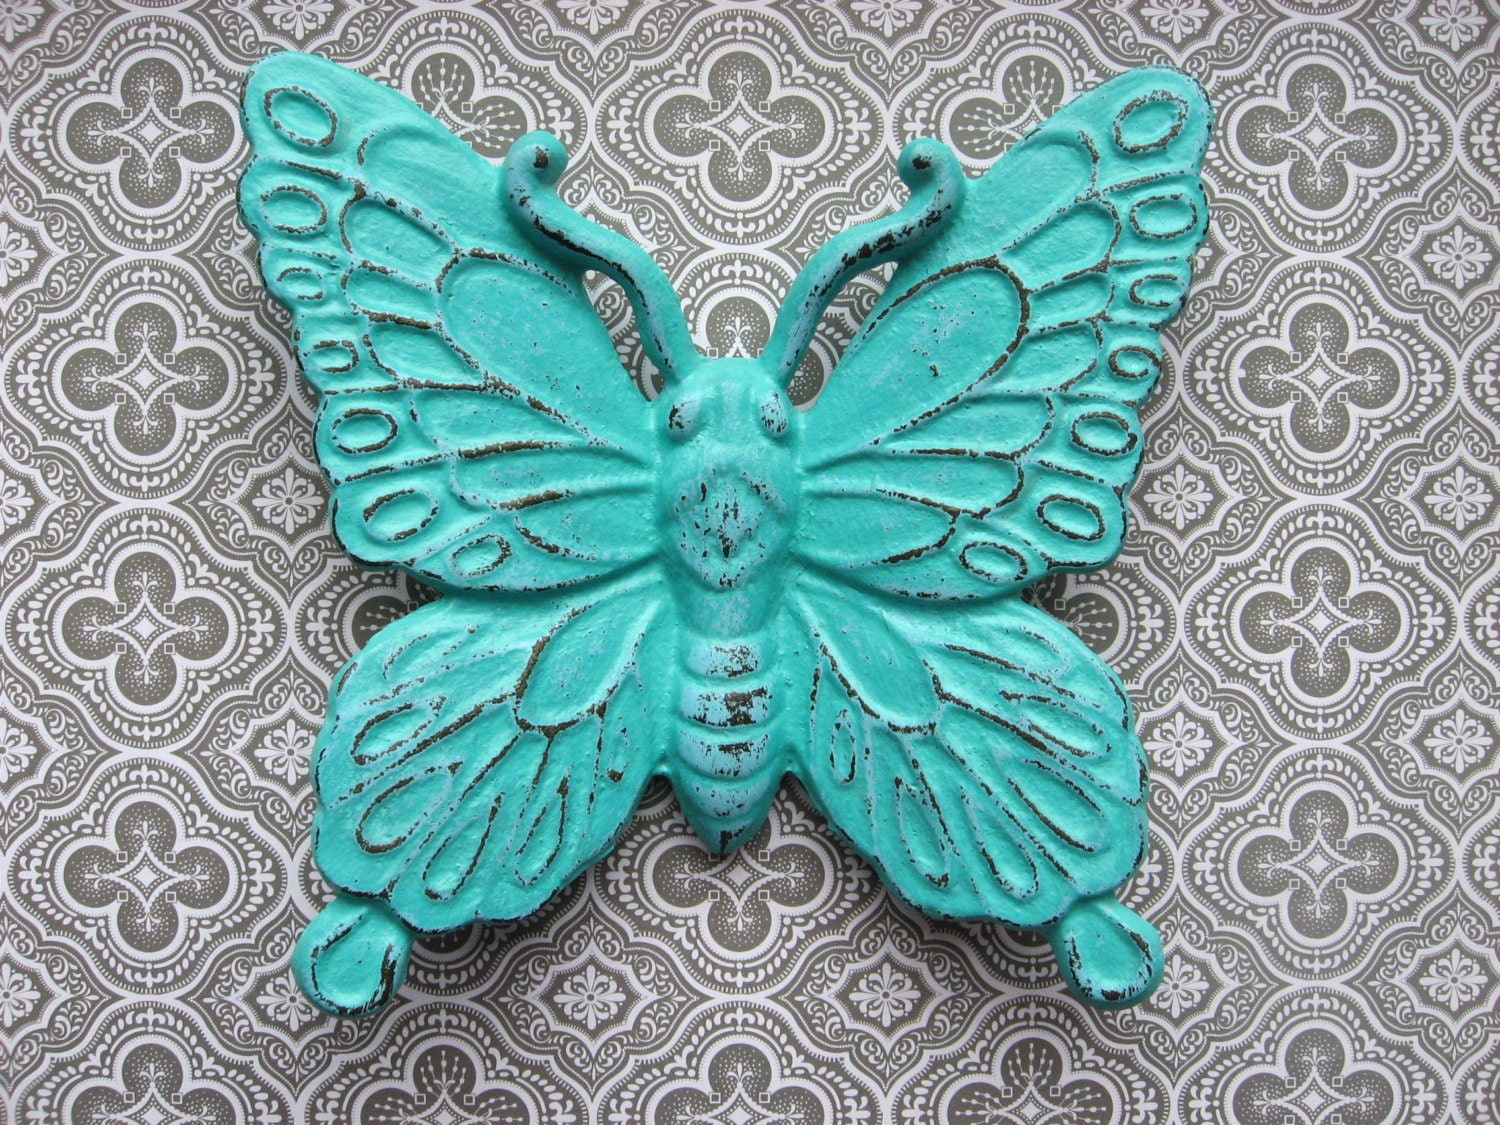 Hanging Butterfly Wall Decor : Butterfly decor wall hanging aqua blue by theturquoisecottage